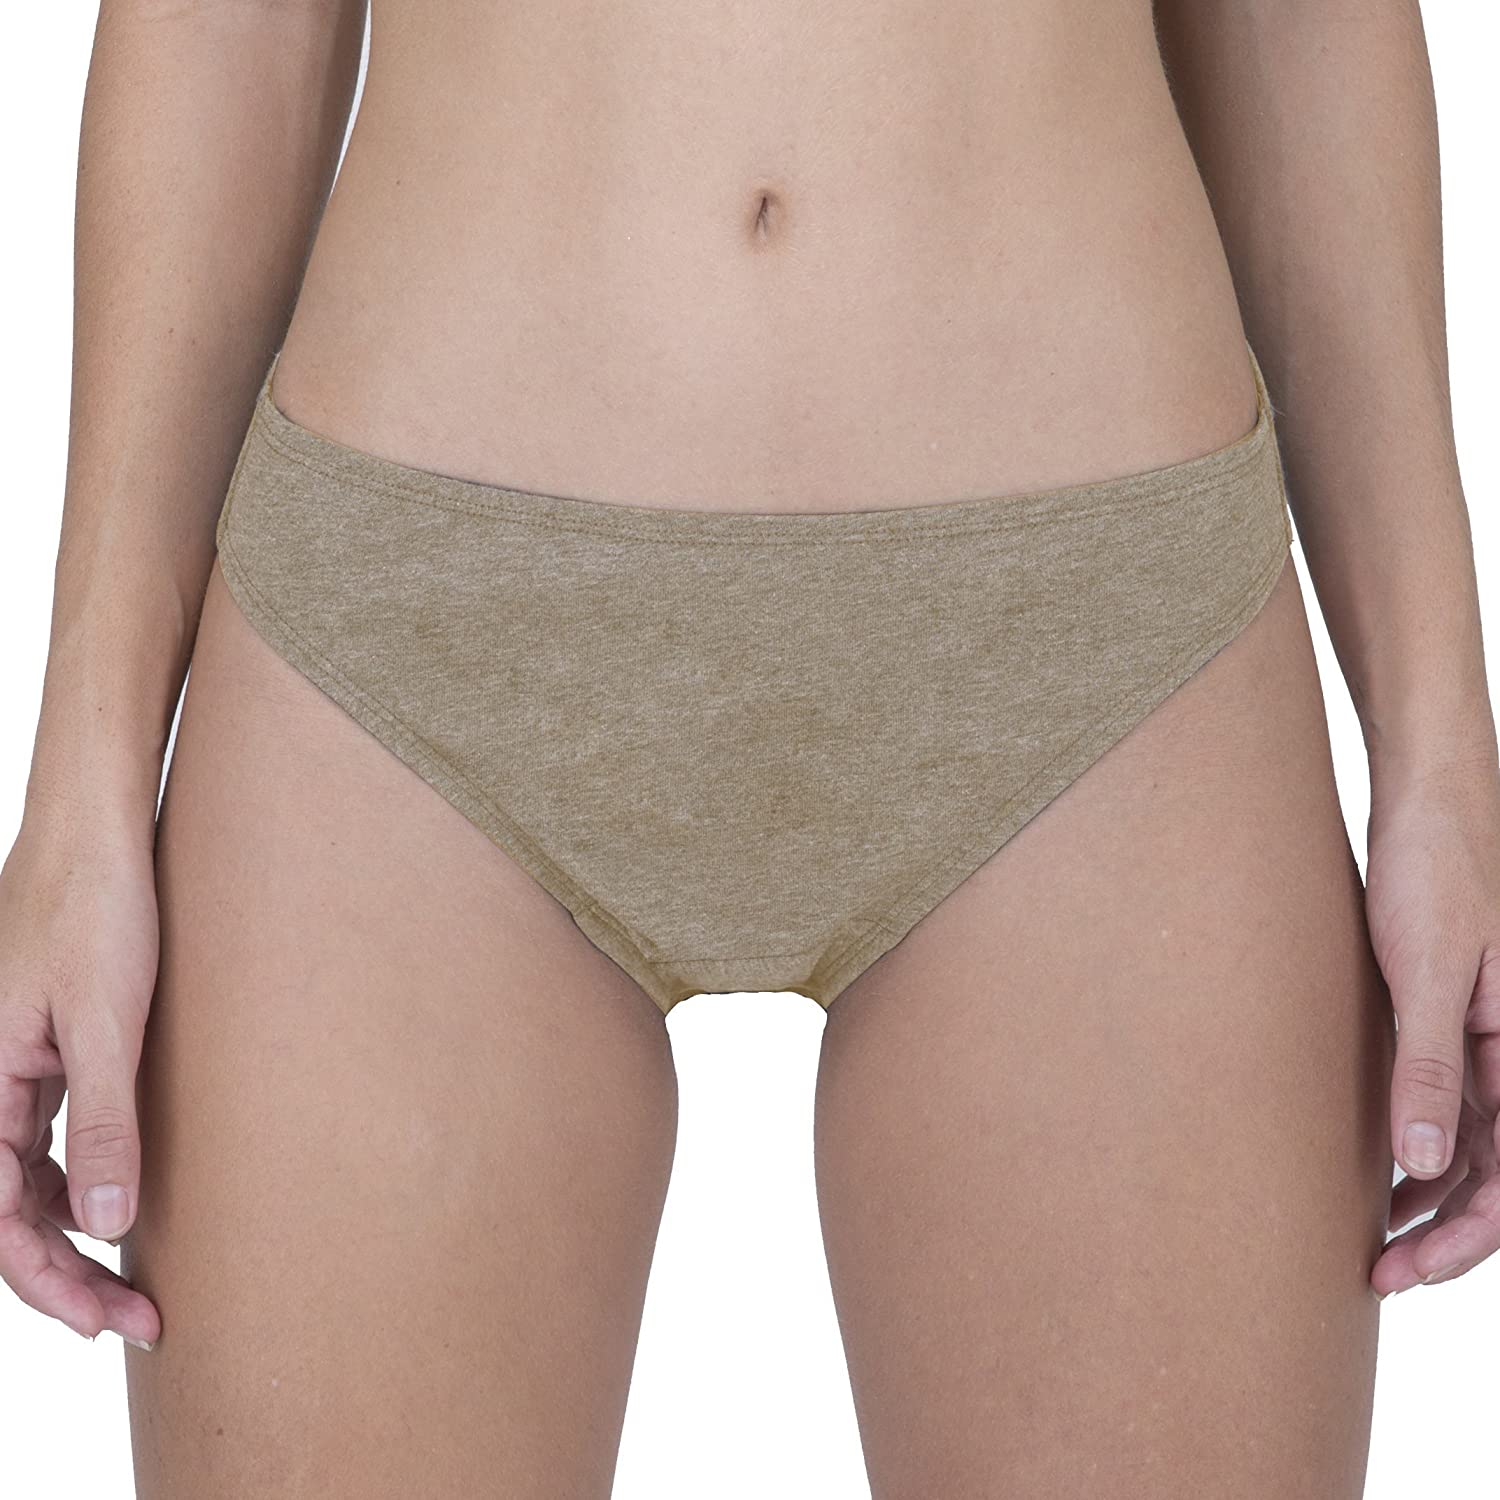 Women's Low-rise Contoured Brief Color (2 pack) W22205